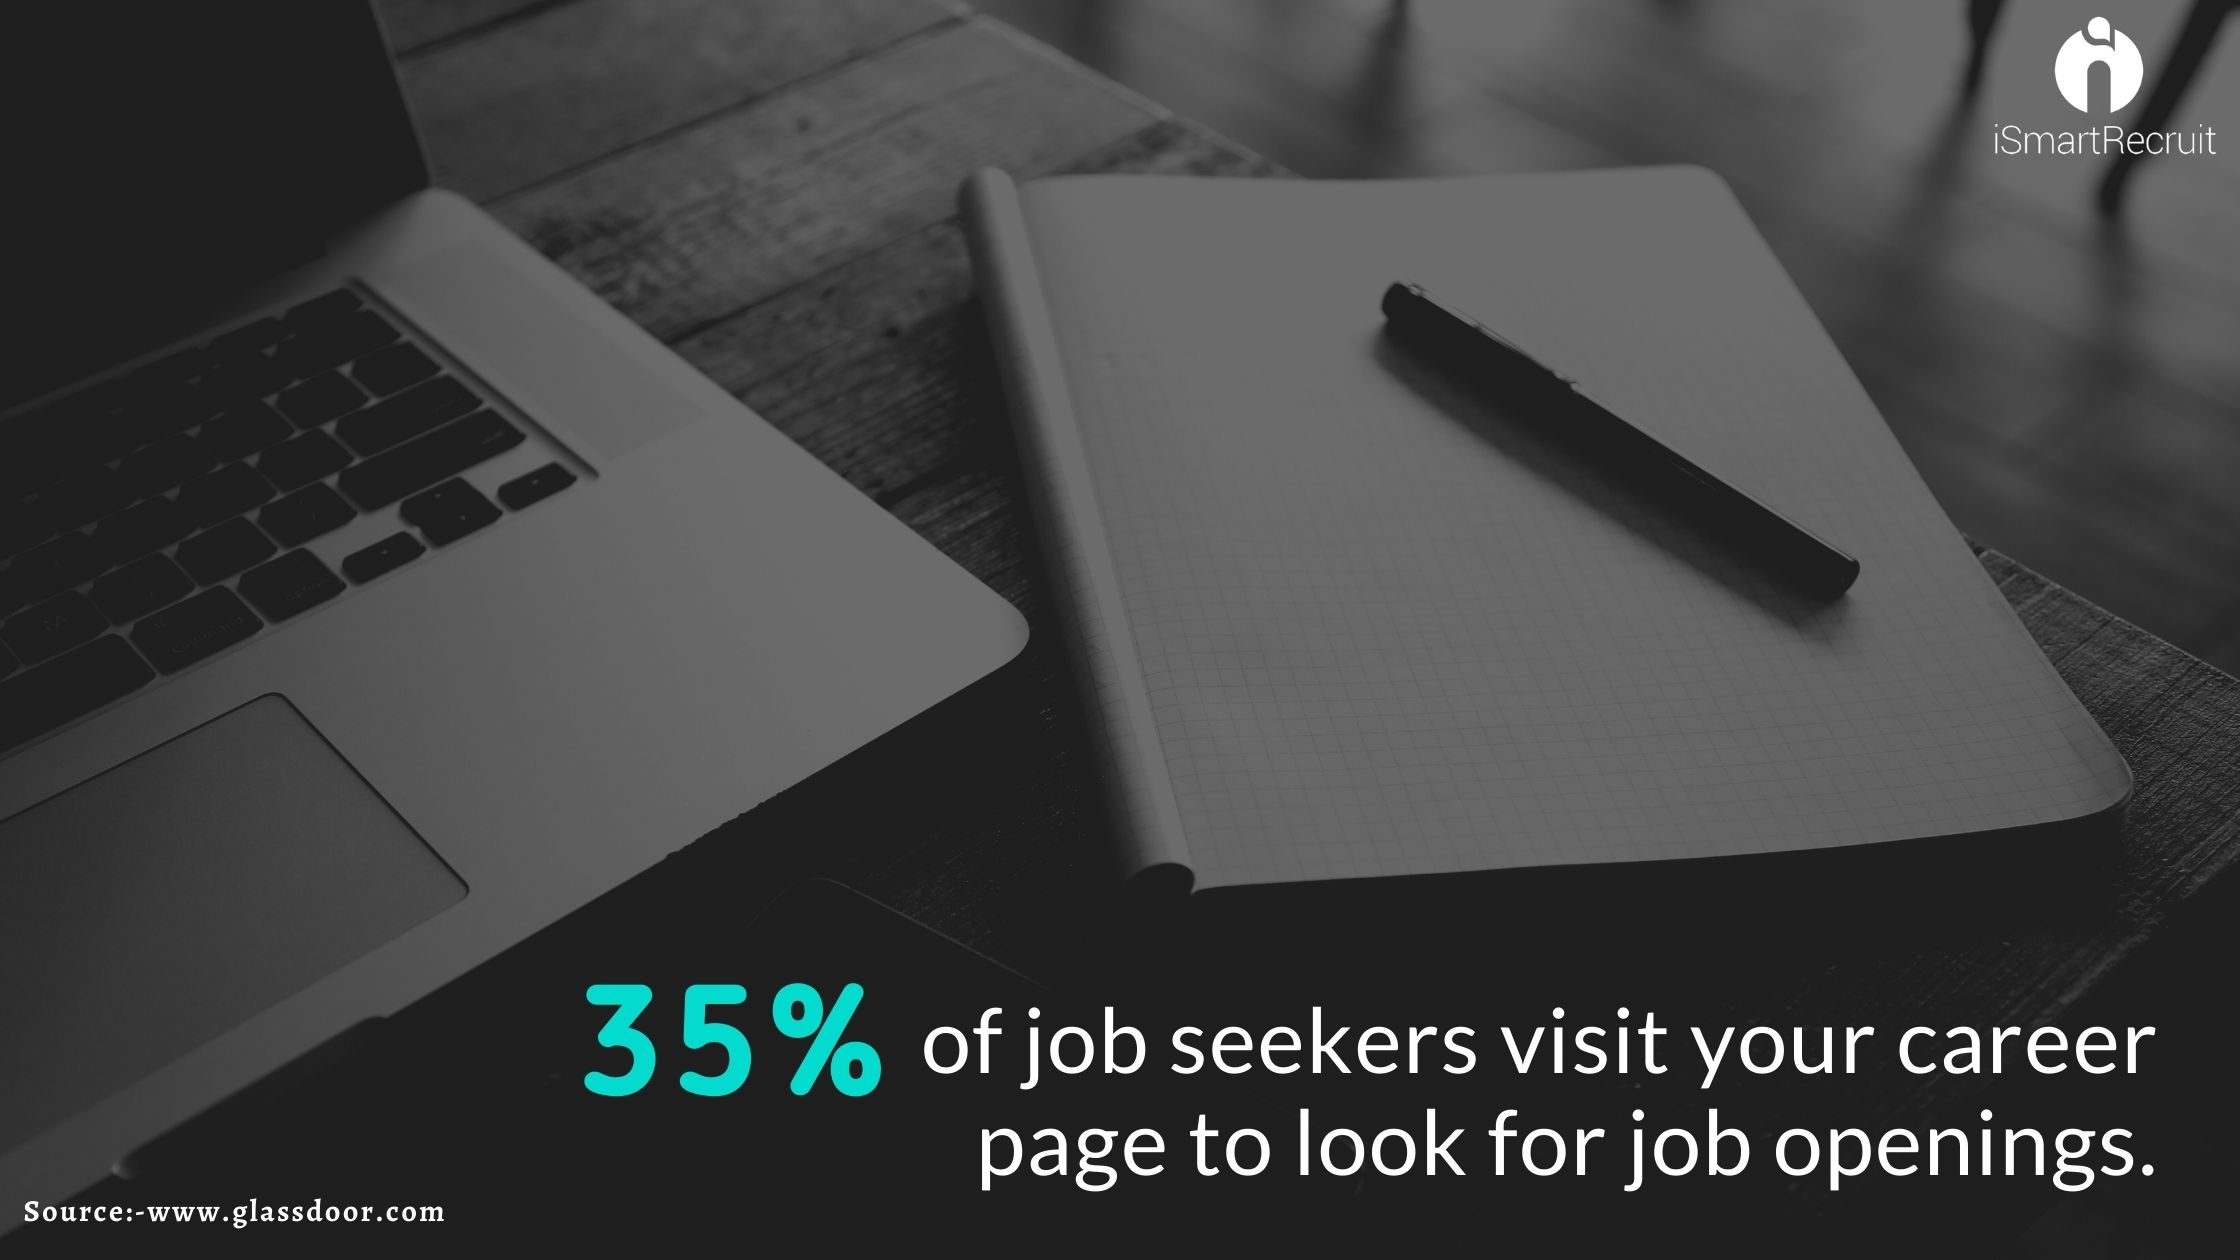 job seekers visit your career page to look for job openings